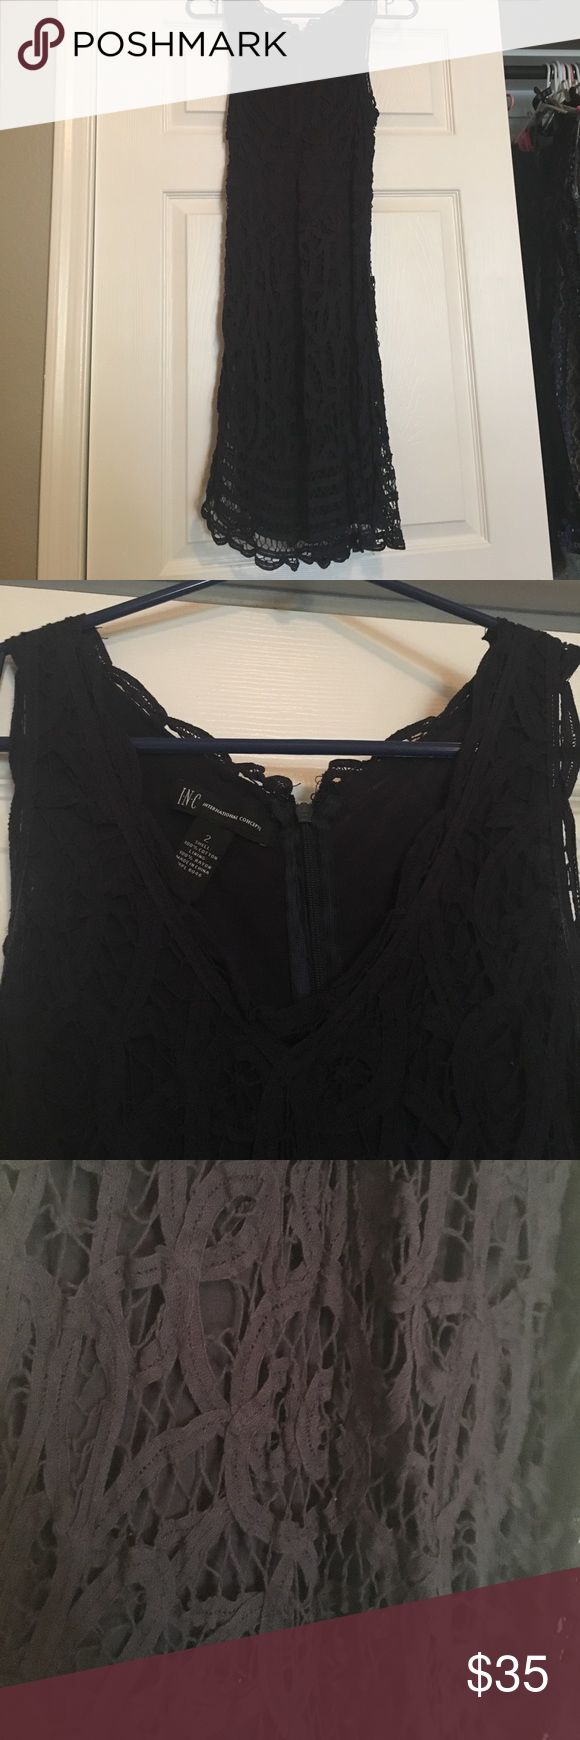 Navy blue INC dress Navy blue INC dress. Worn once. Very flattering. Zip up back. Cottony lace pattern over cotton lining. Lace goes slightly longer than slip for additional cuteness INC International Concepts Dresses